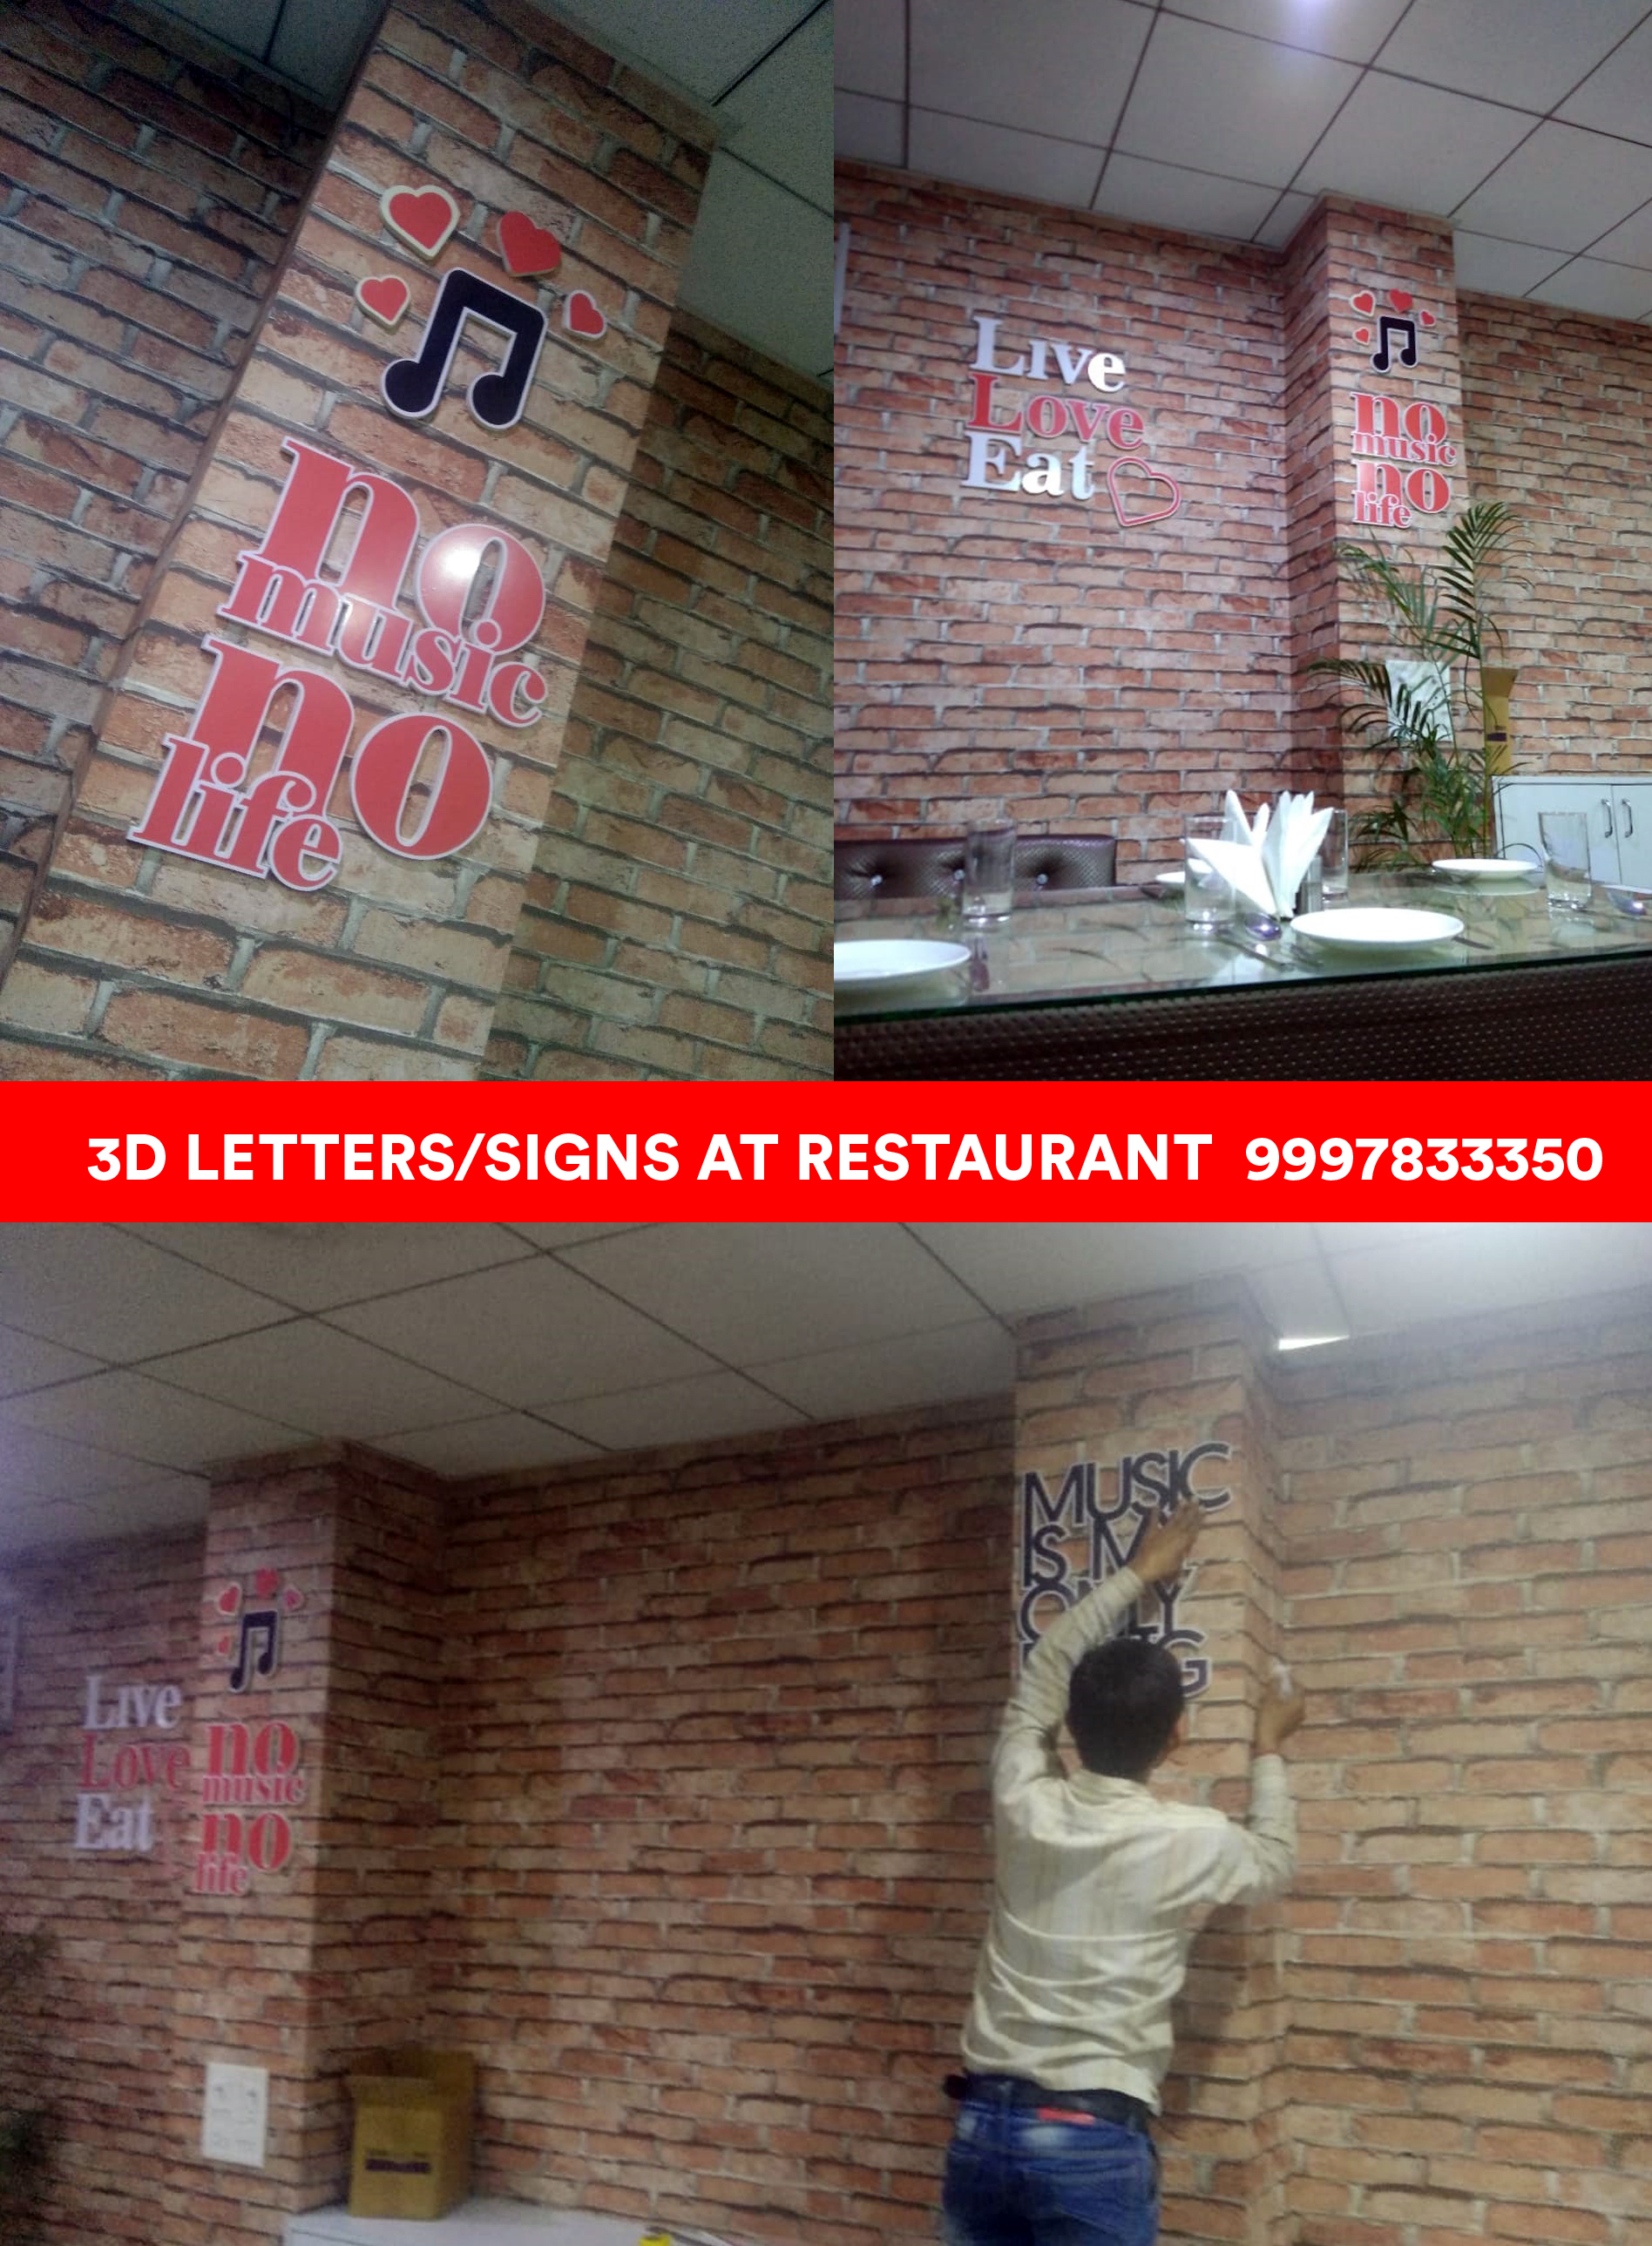 3D Letters Signs at Wall of Restaurant